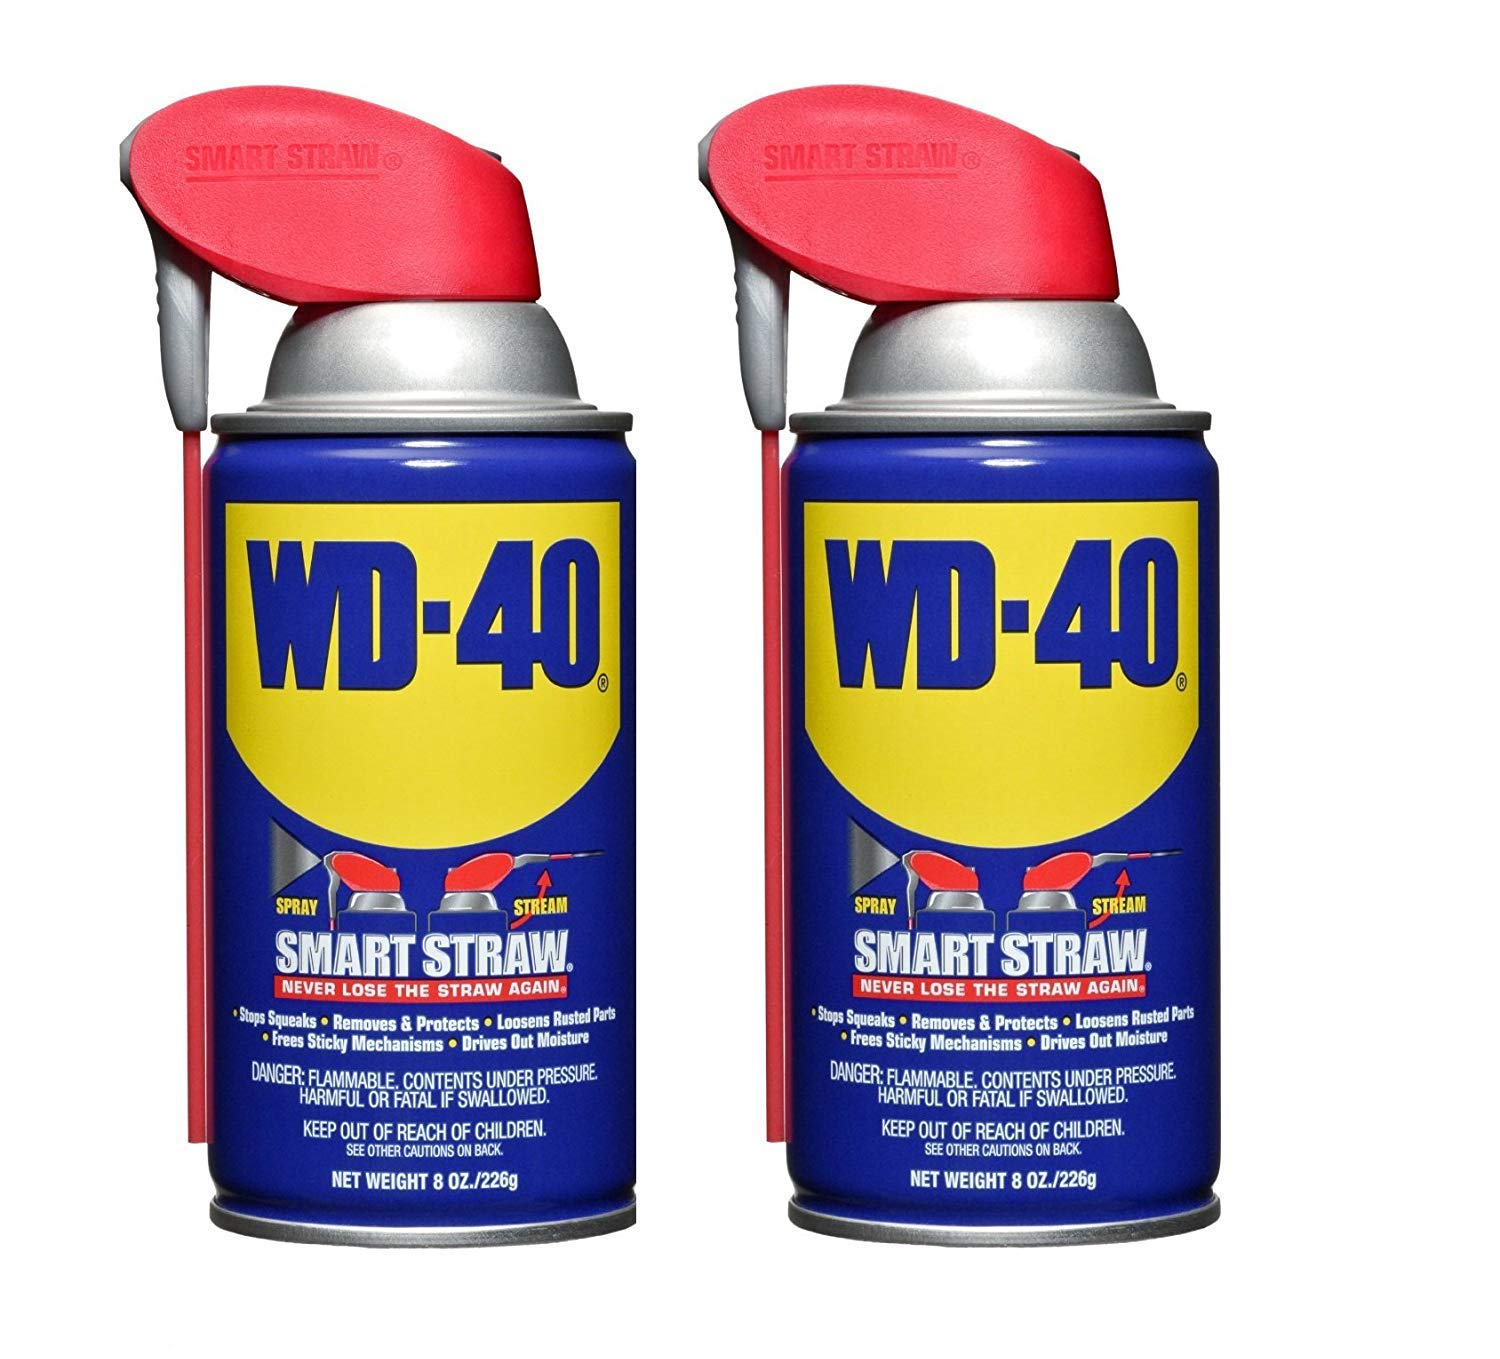 WD-40 110057 Multi-Use Product Spray with Smart Straw, 8 oz  (Pack of 2)